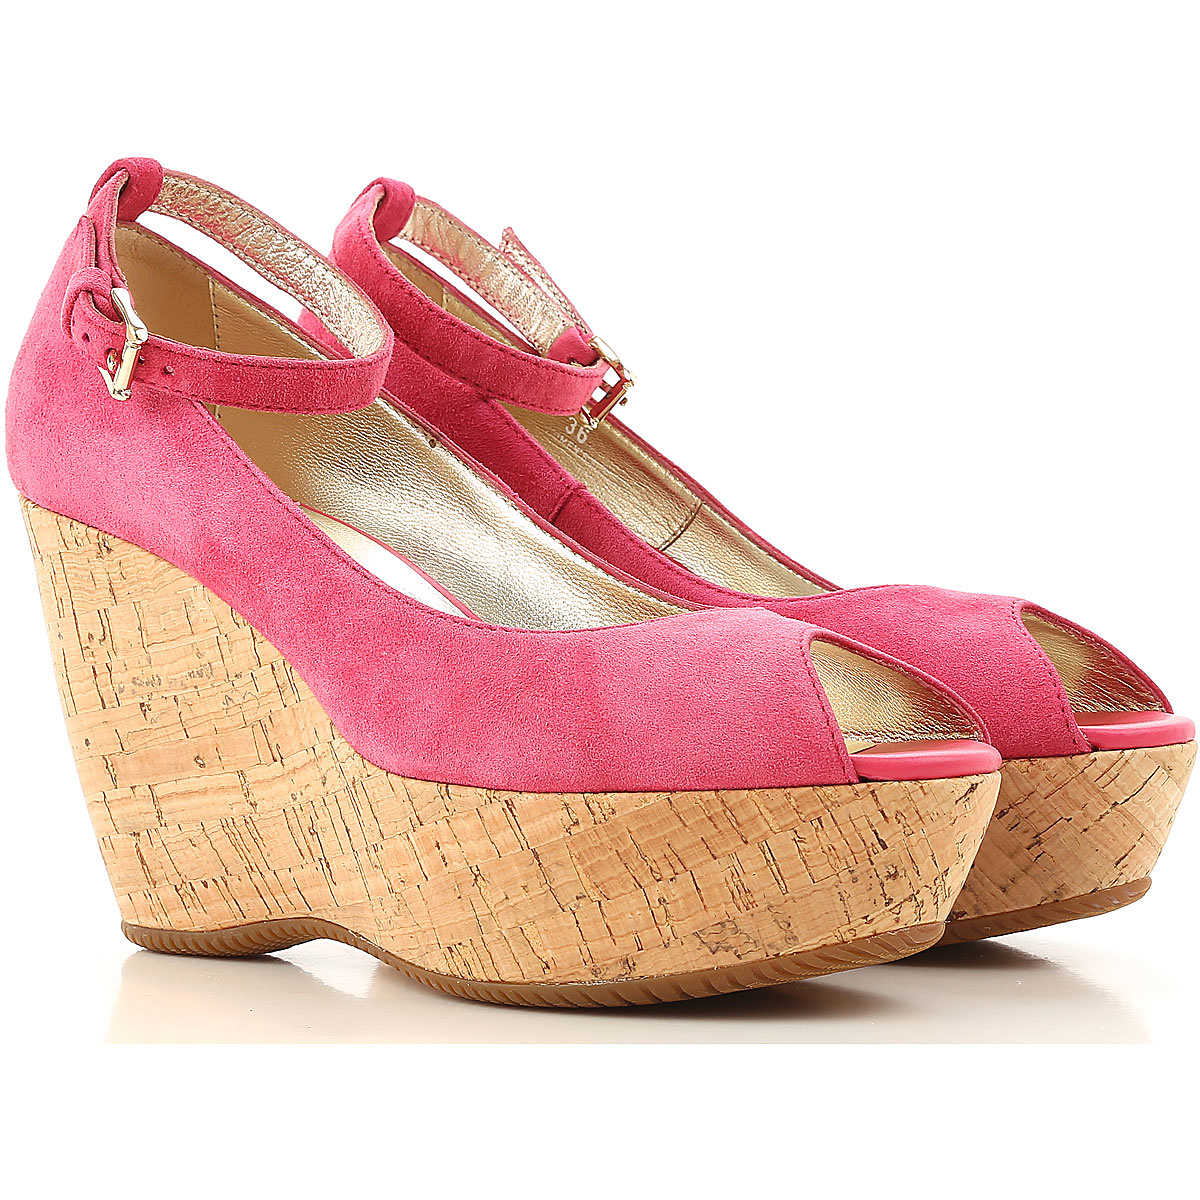 Hogan Wedges for Women On Sale in Outlet Fuchsia UK - GOOFASH